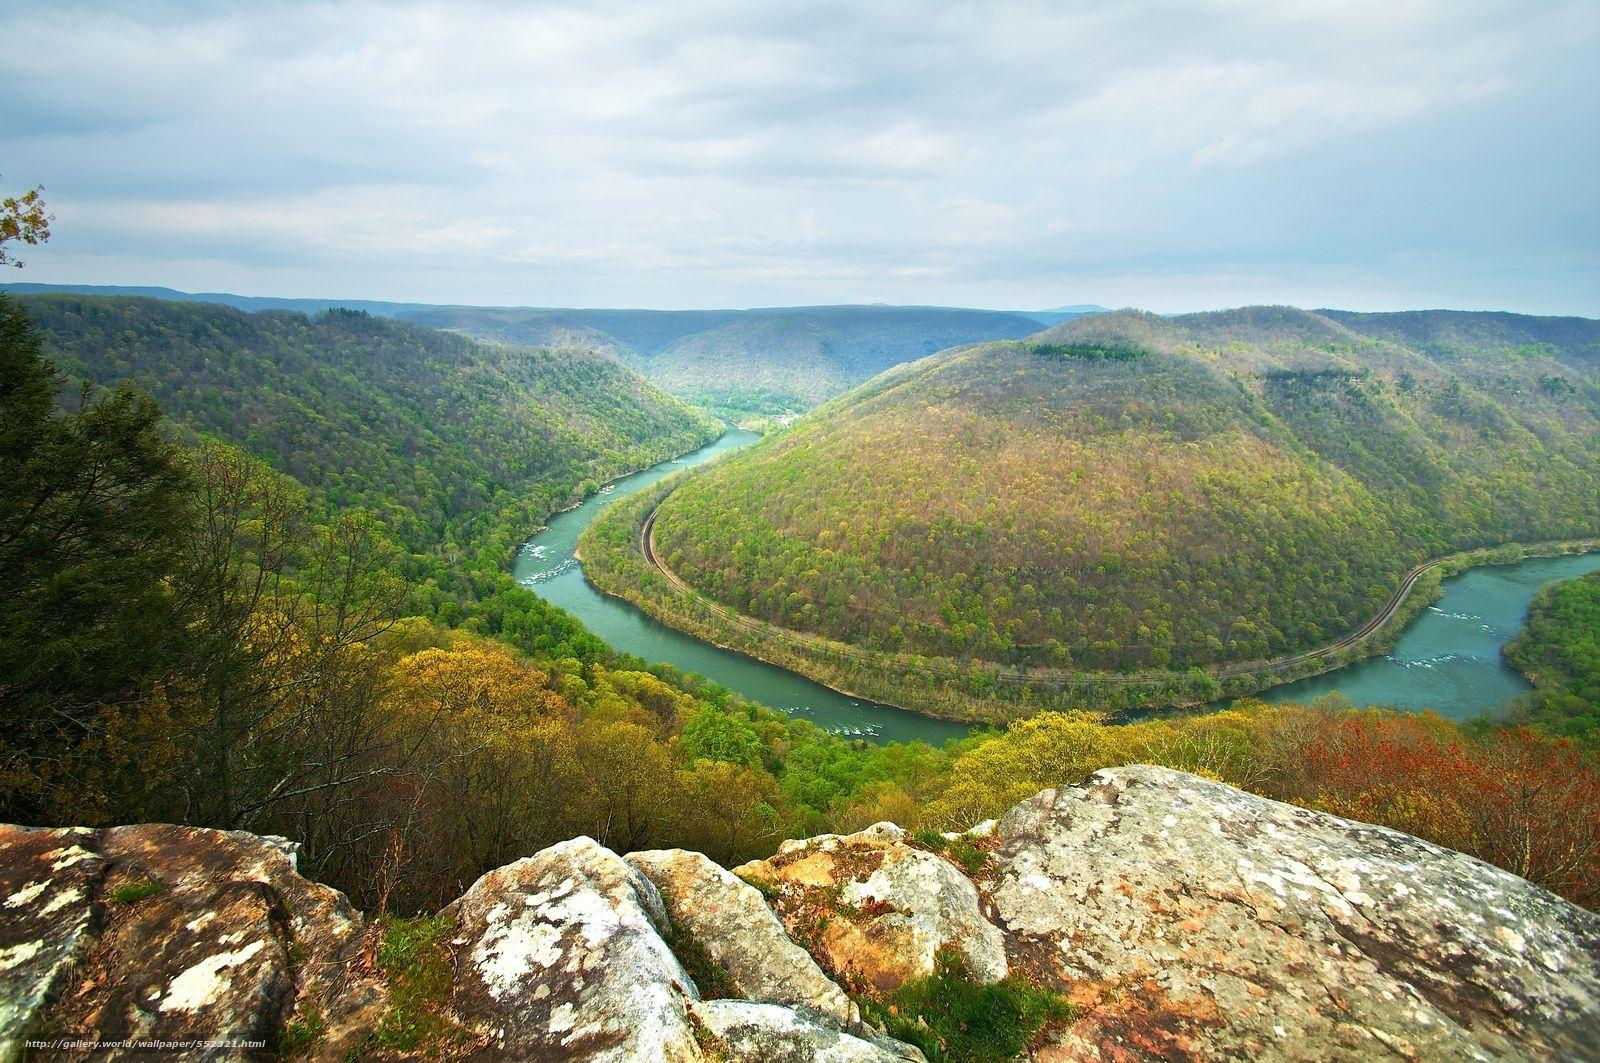 Download wallpapers New River Gorge, Grandview State Park, West